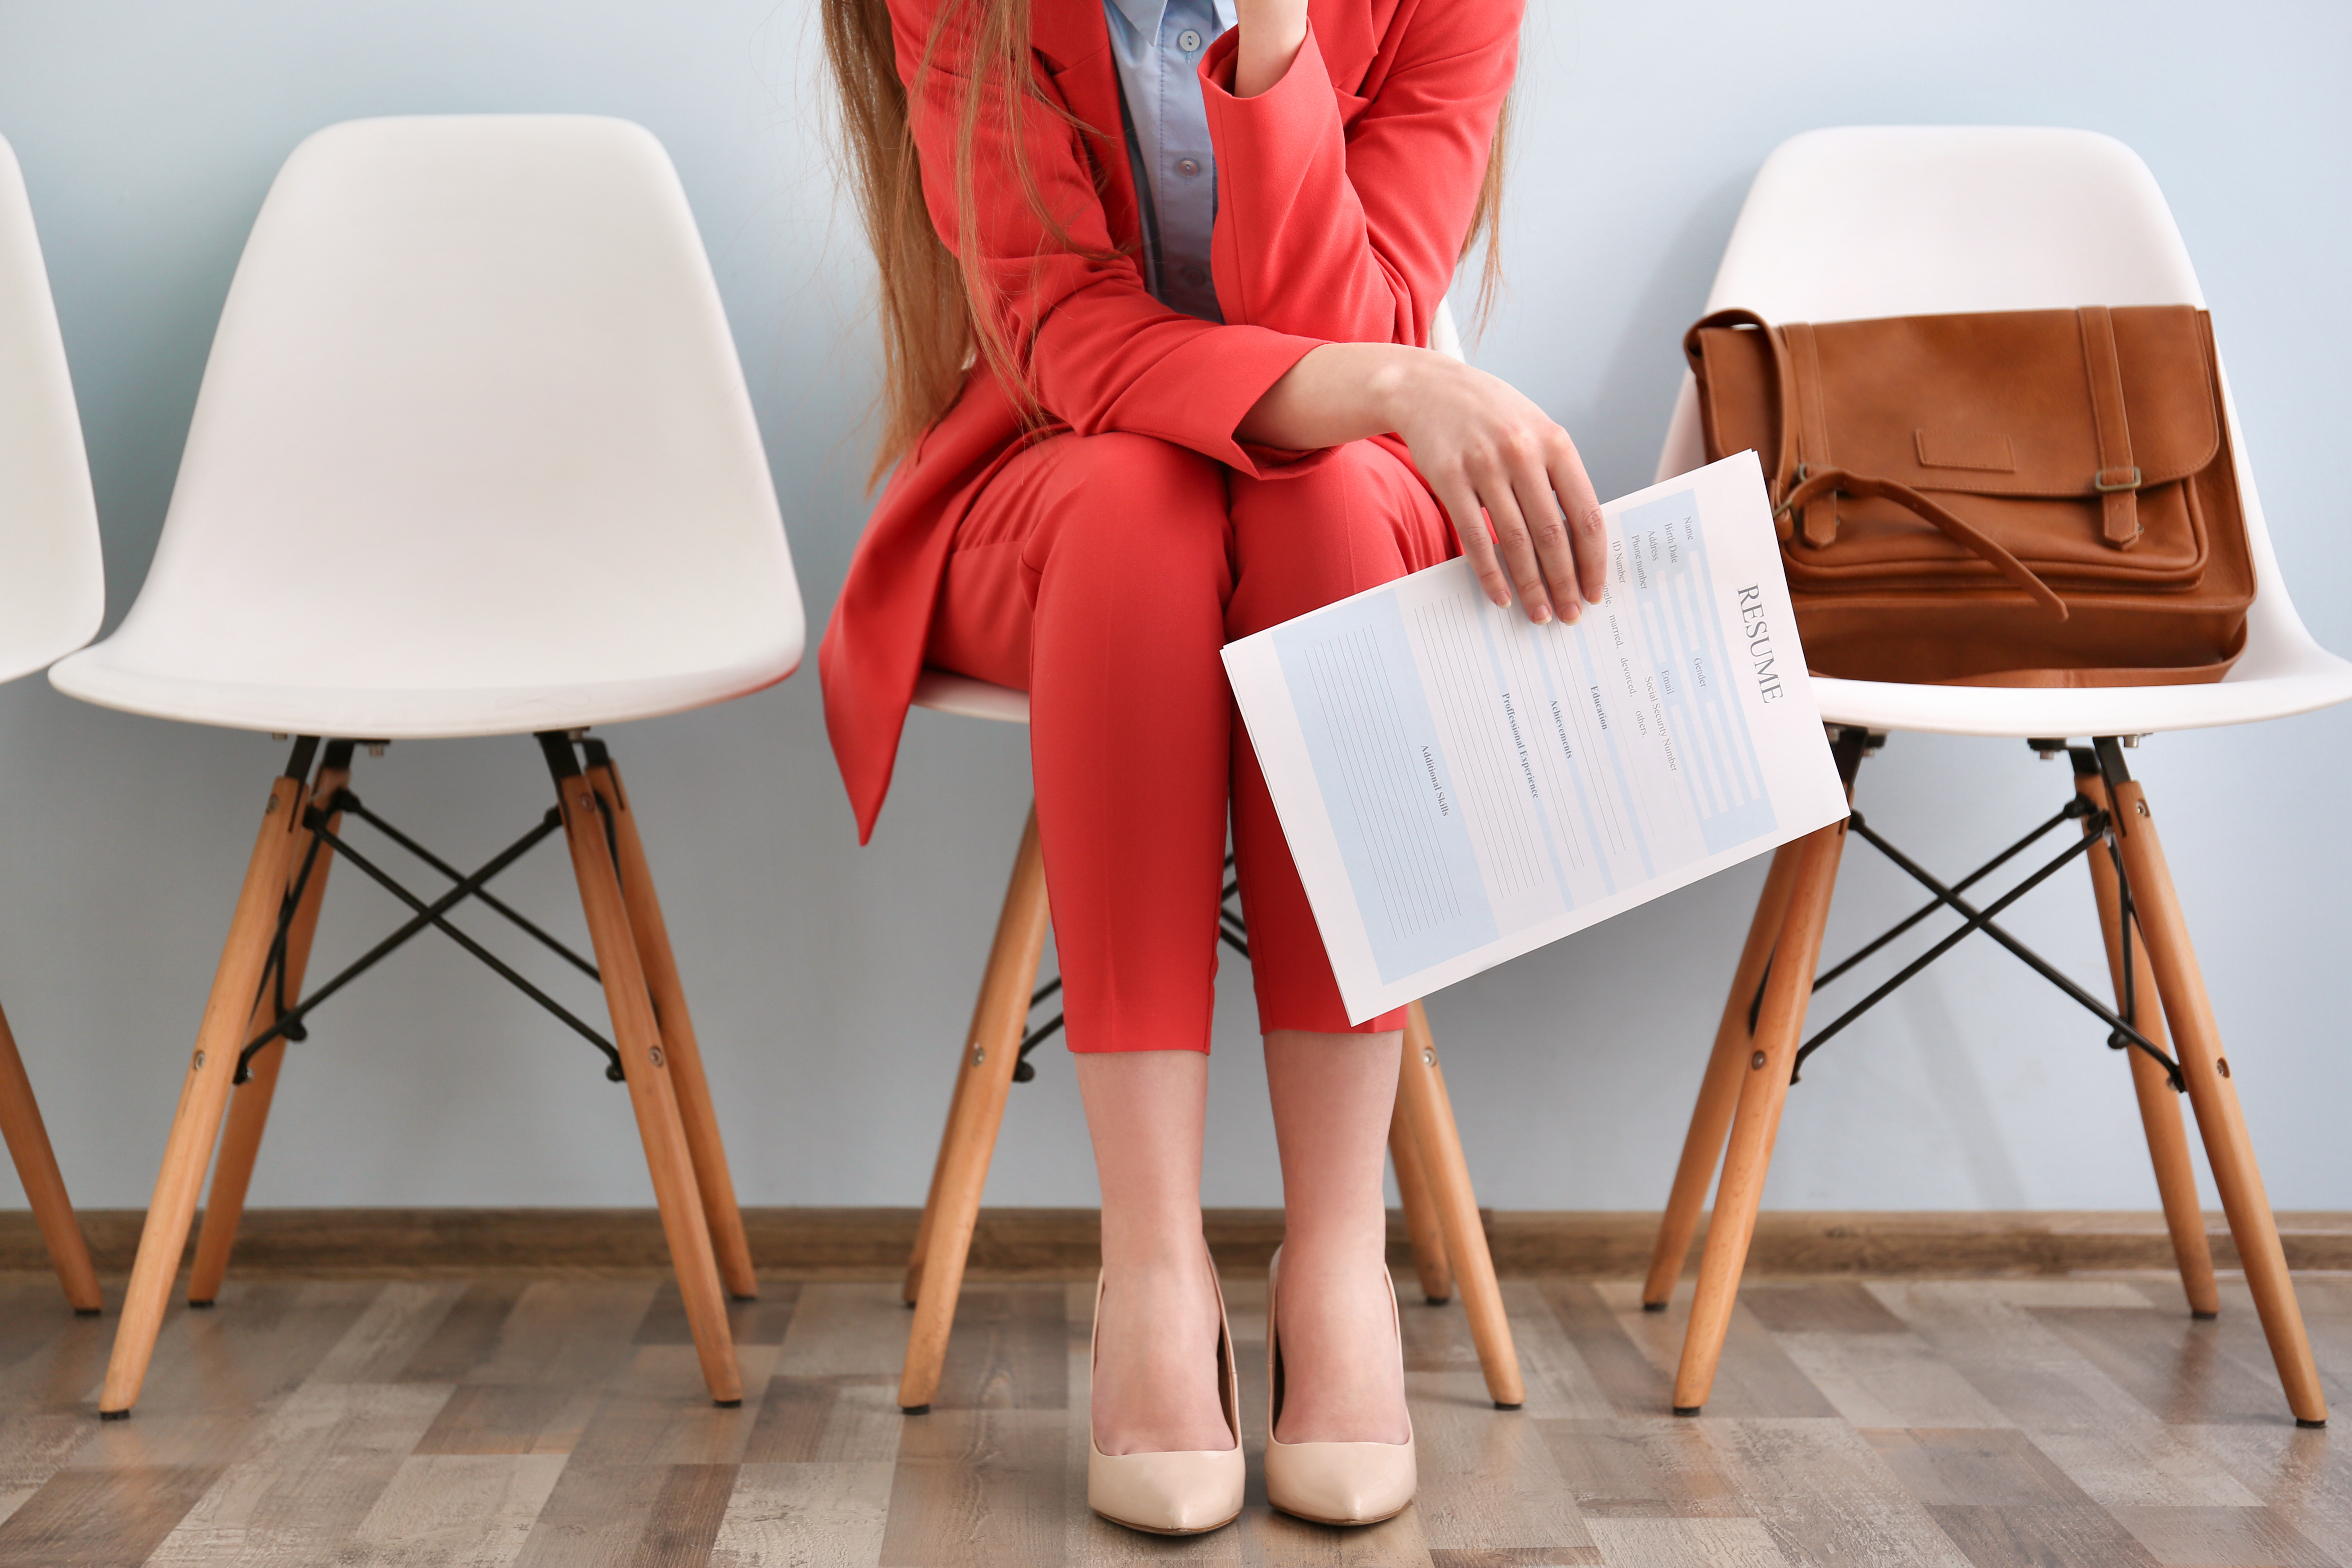 woman-waiting-for-interview